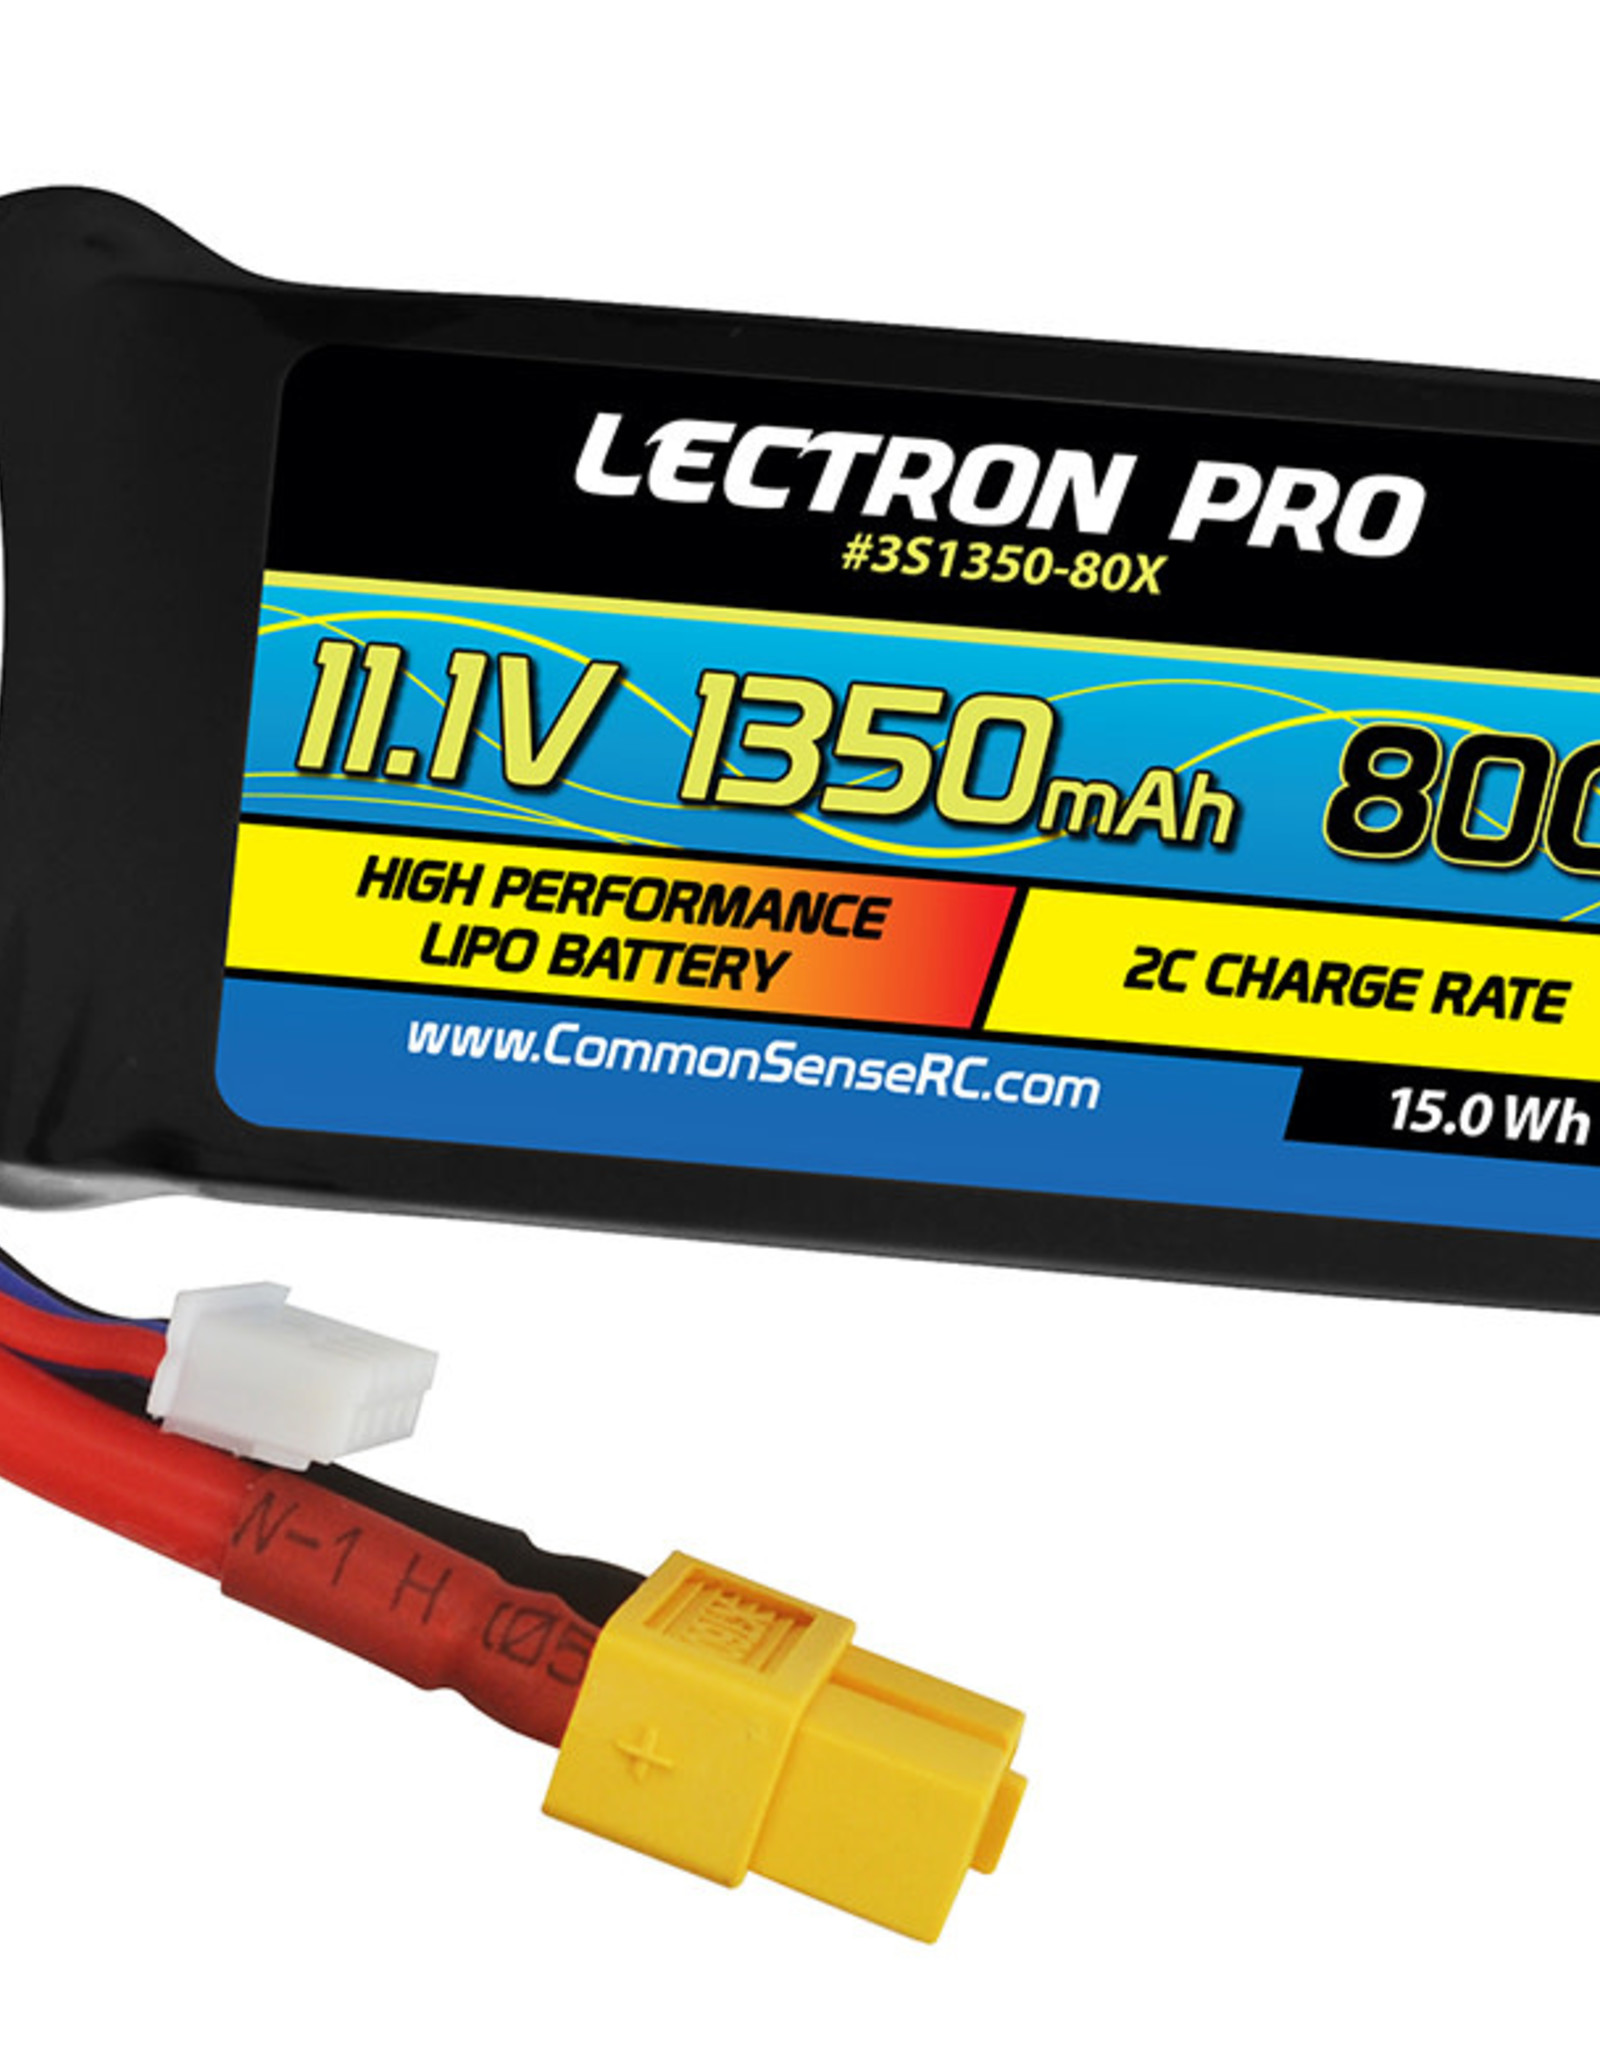 Common Sense Rc Lectron Pro™ 11.1V 1350mAh 80C Lipo Battery with XT60 Connector